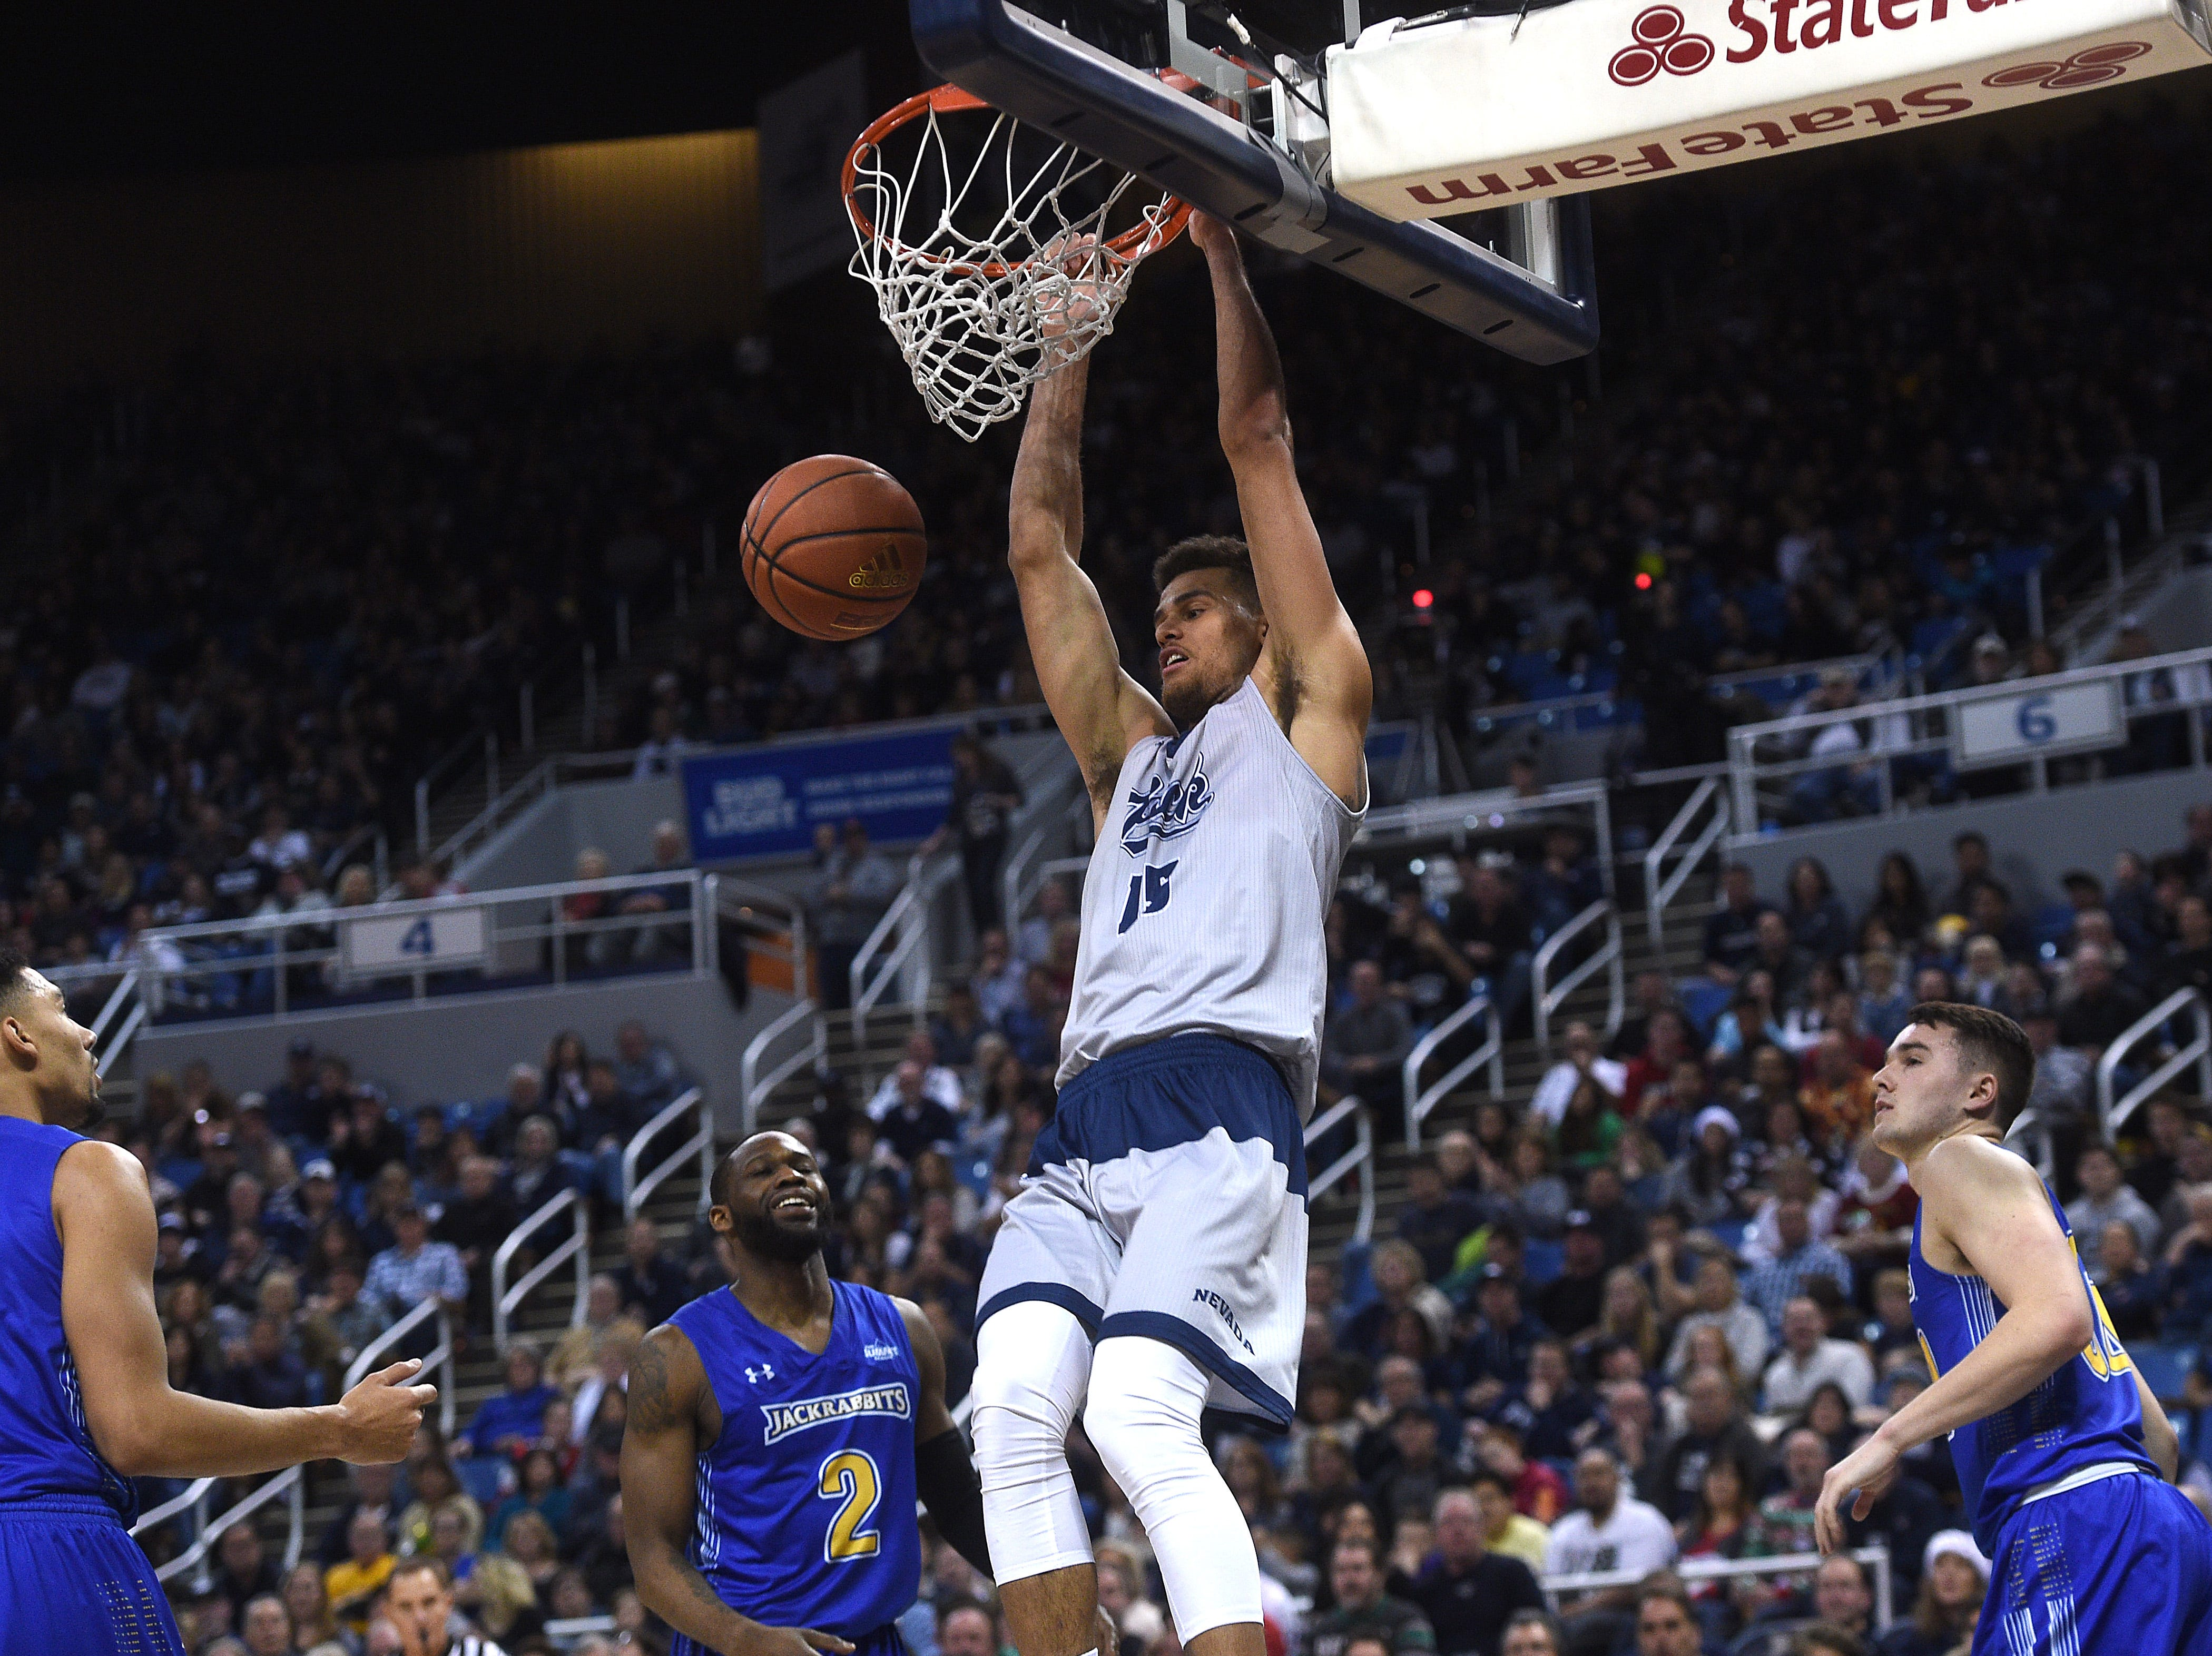 Nevada's Trey Porter (15) dunks while taking on South Dakota State during their basketball game at Lawlor Events Center in Reno on Dec. 15, 2018.